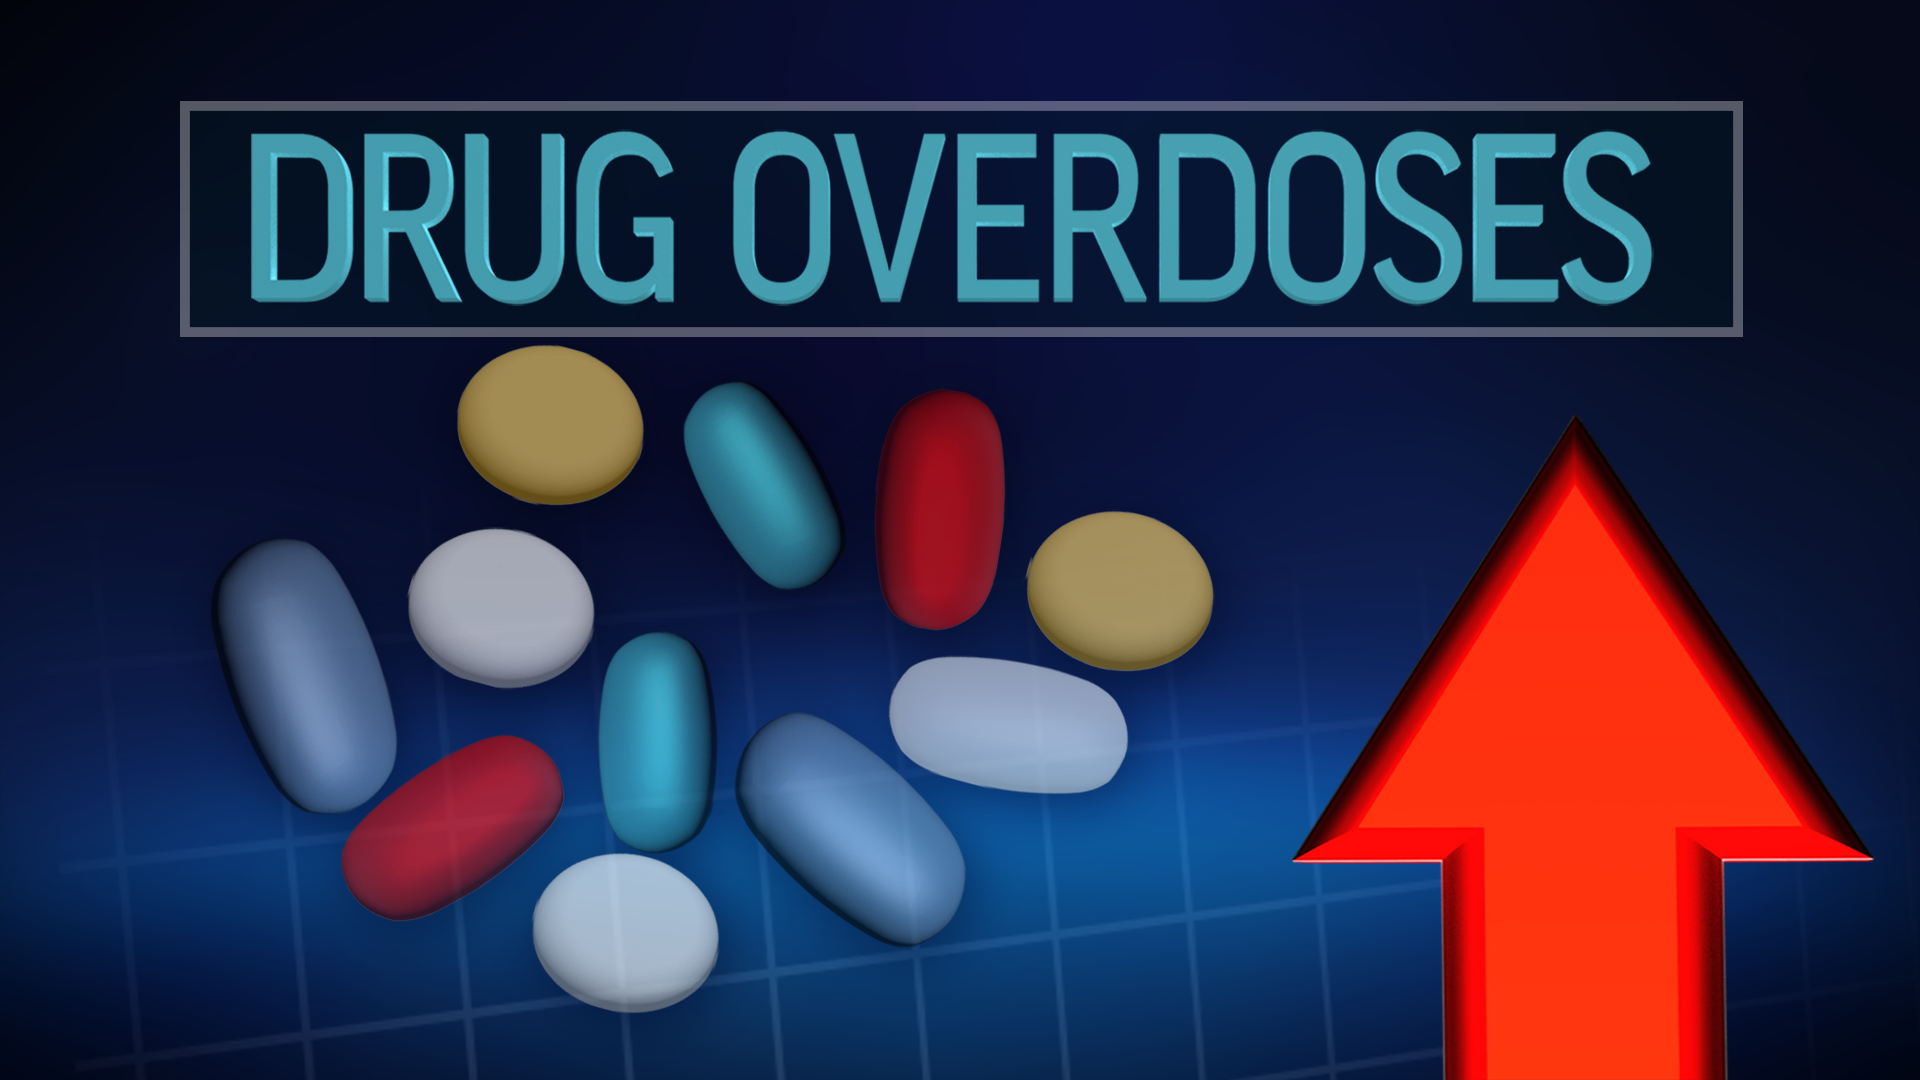 Accidental overdoses killed 8 people a day in OH past year